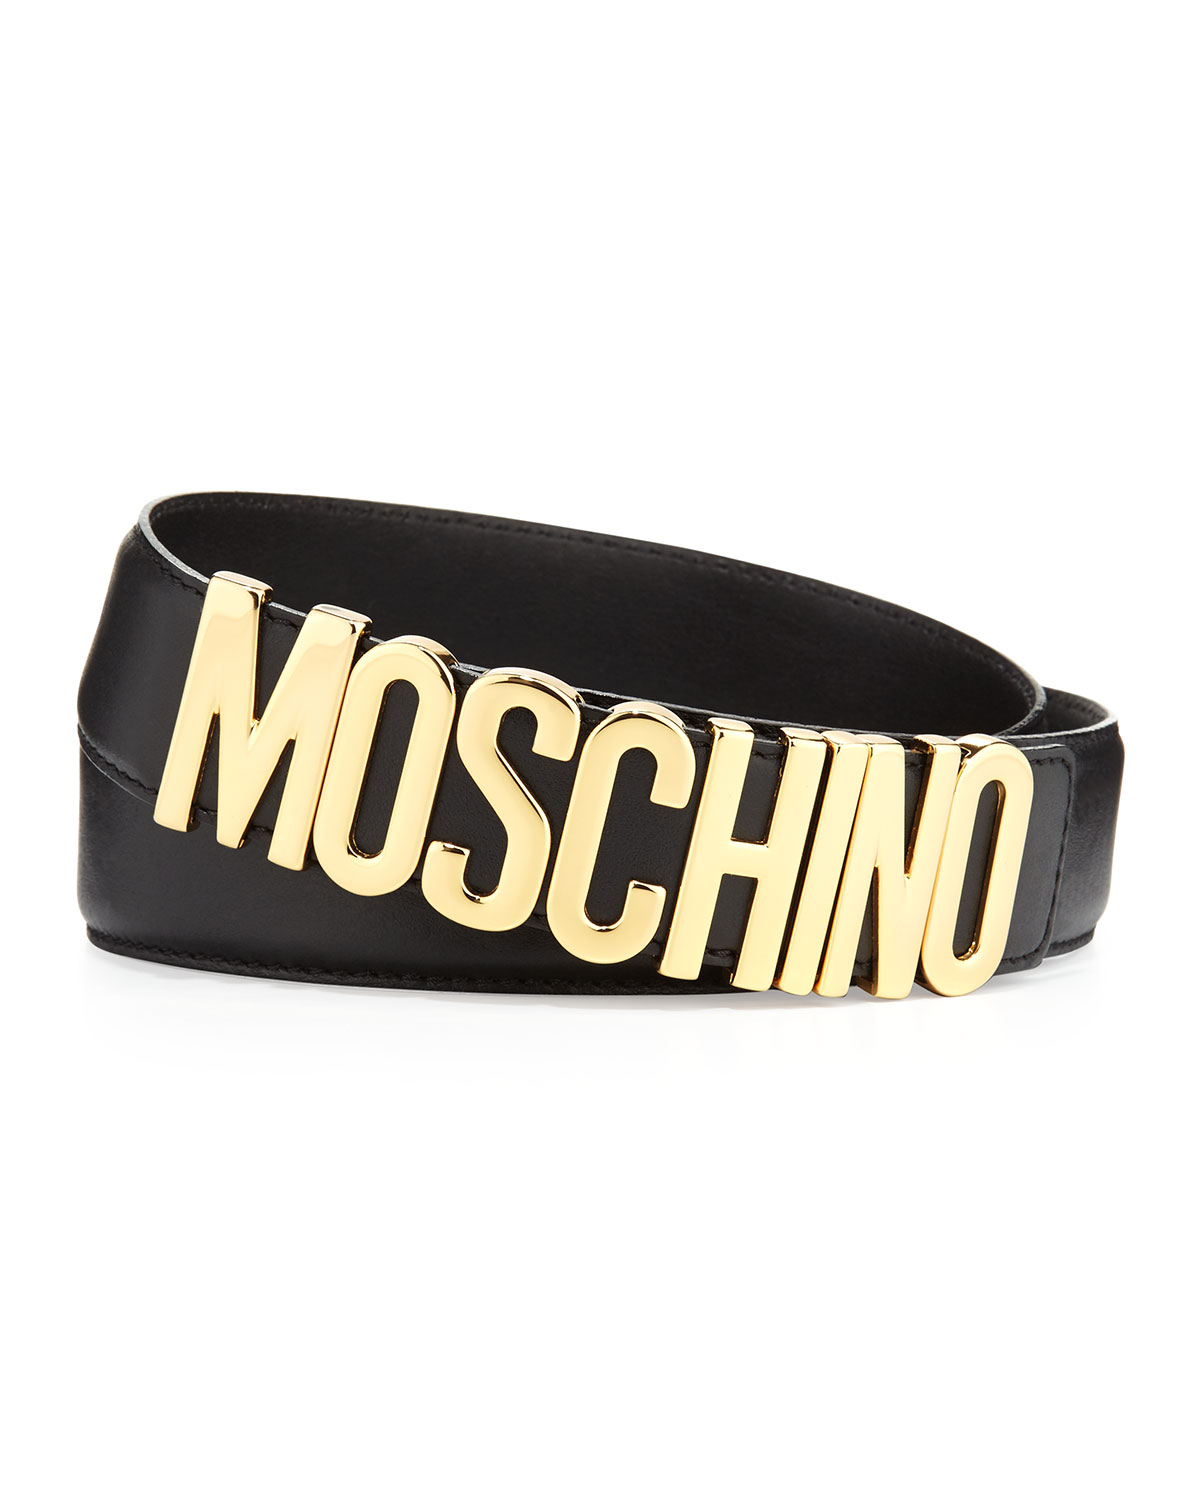 1d3db4e8bc Moschino Large Logo Adjustable Leather Belt, Black/Gold | Neiman Marcus